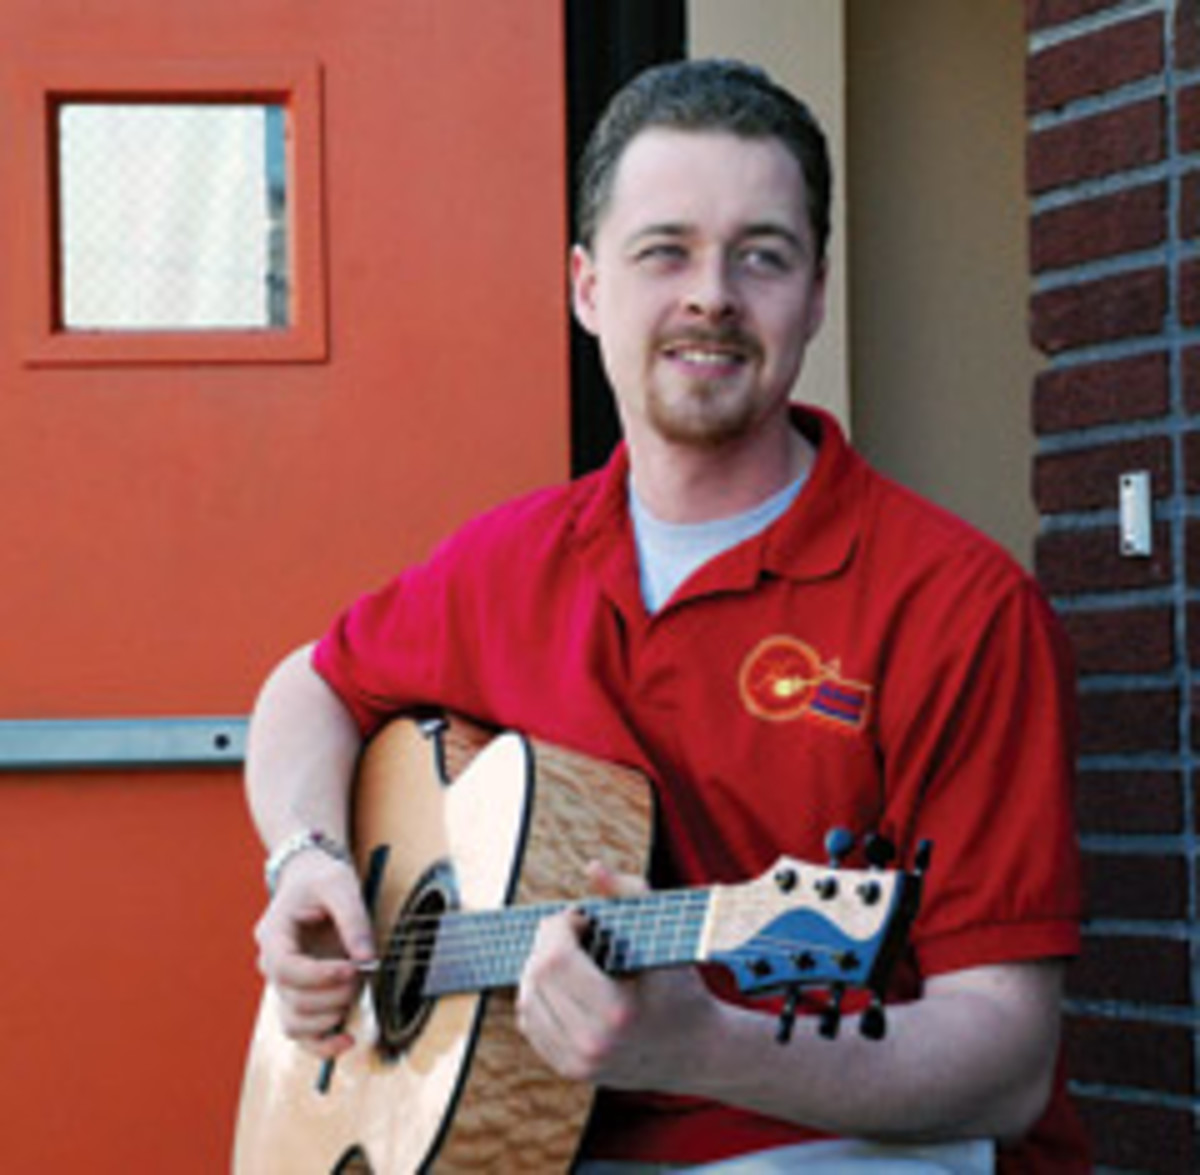 Ian Kelly specializes in creating hand-built custom acoustic and electric guitars. He says his formal training is what separates his product from commercial retailers.